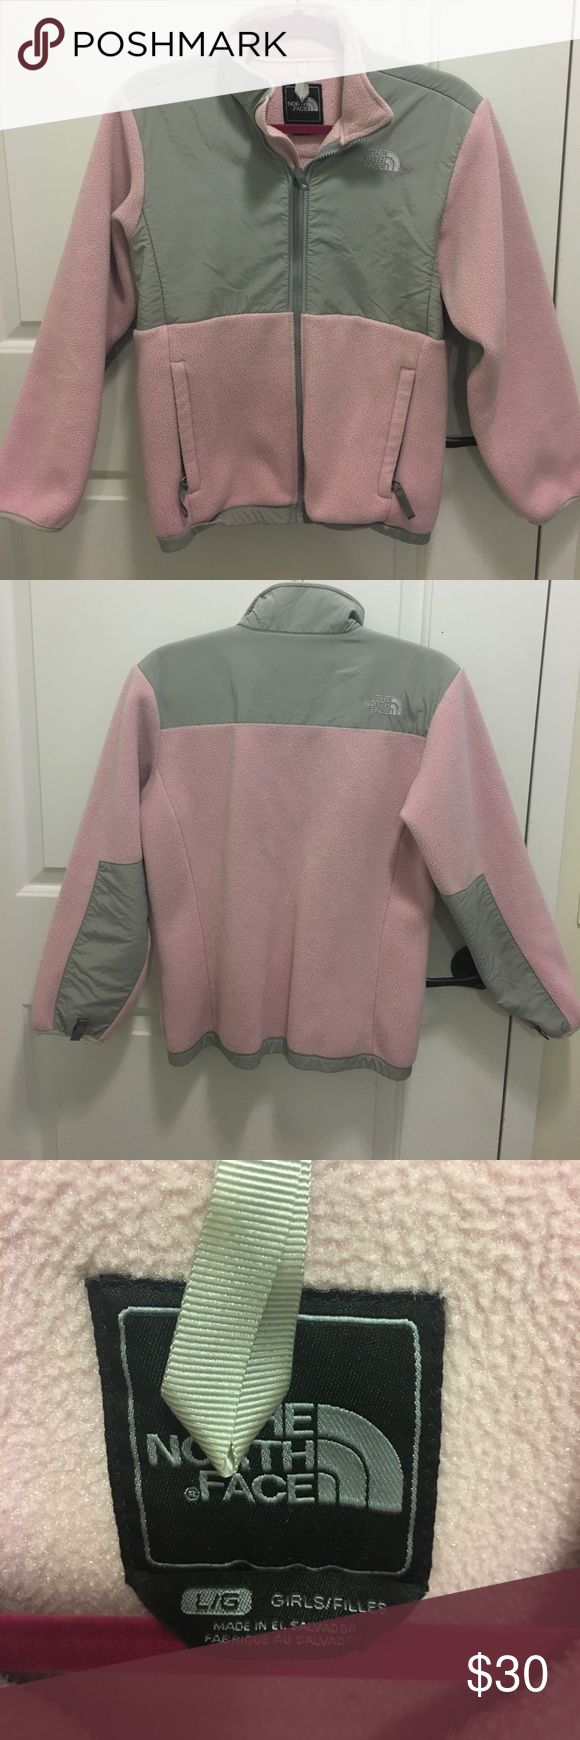 The North Face - Girls pink and grey zip up fleece Girls North Face fleece jacket size Large (12-14). Gently worn. The North Face Jackets & Coats